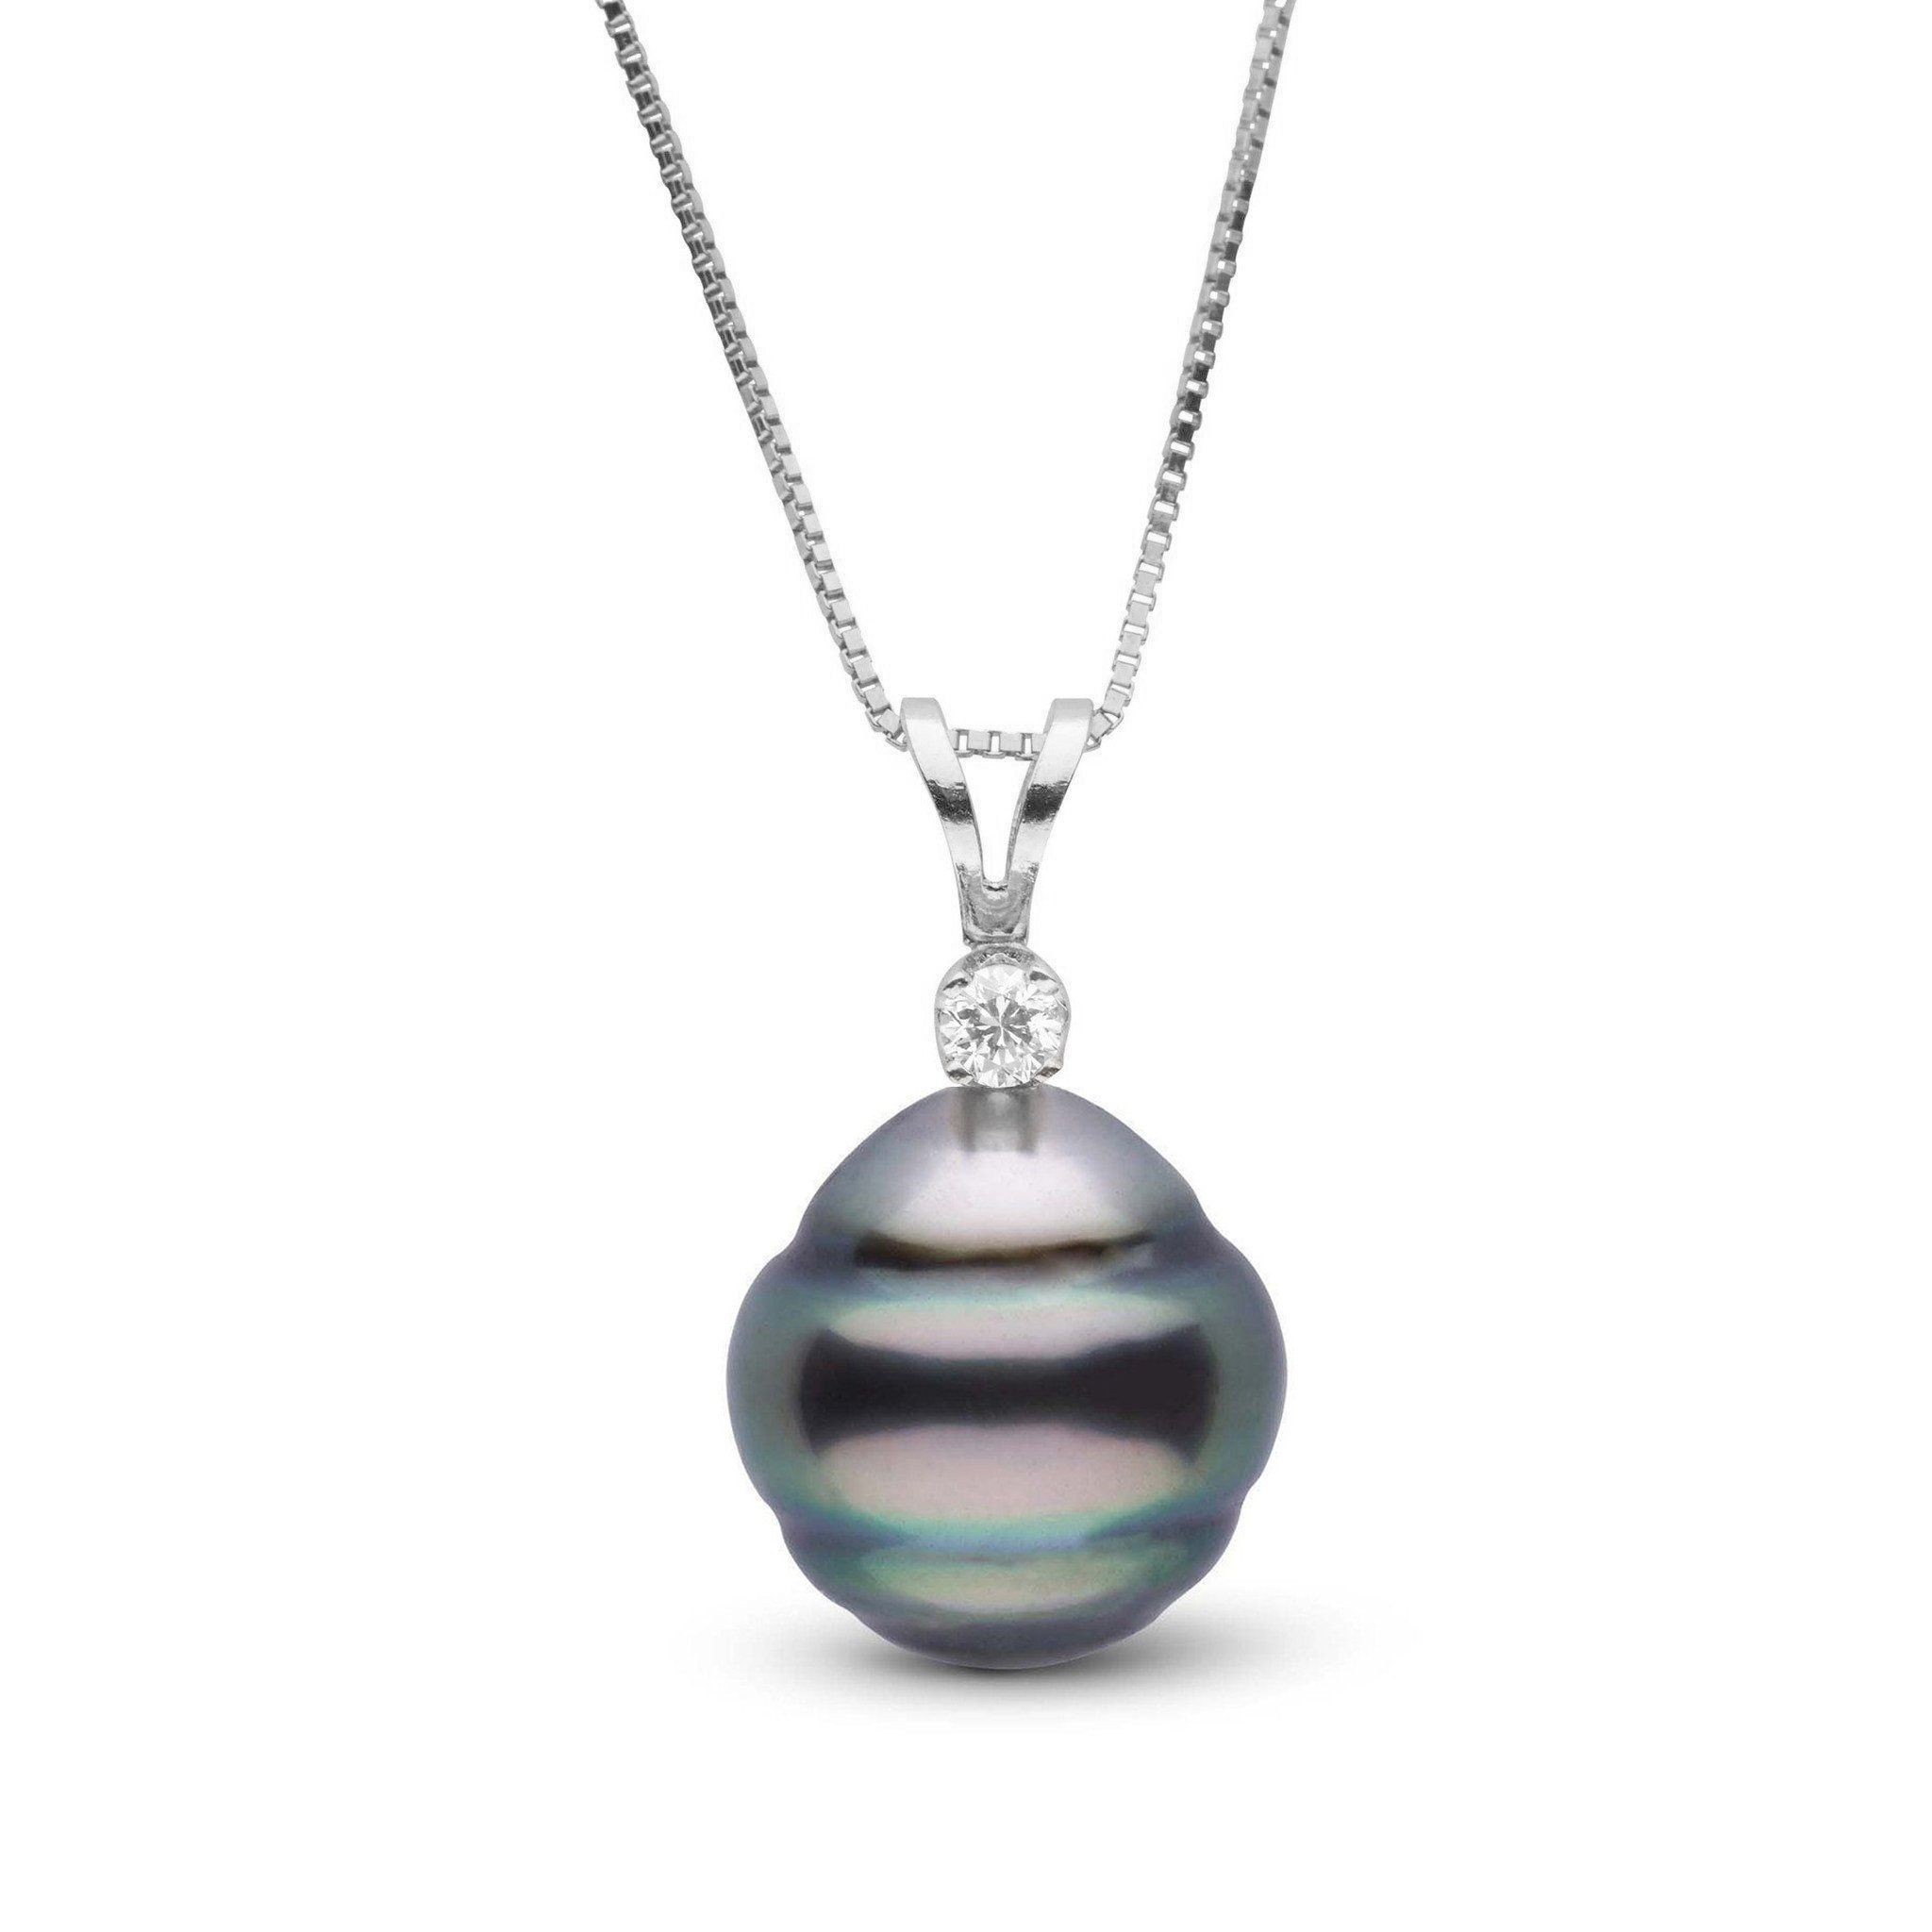 Harmony Collection 11.0-12.0 mm Baroque Tahitian Pearl & Diamond Pendant